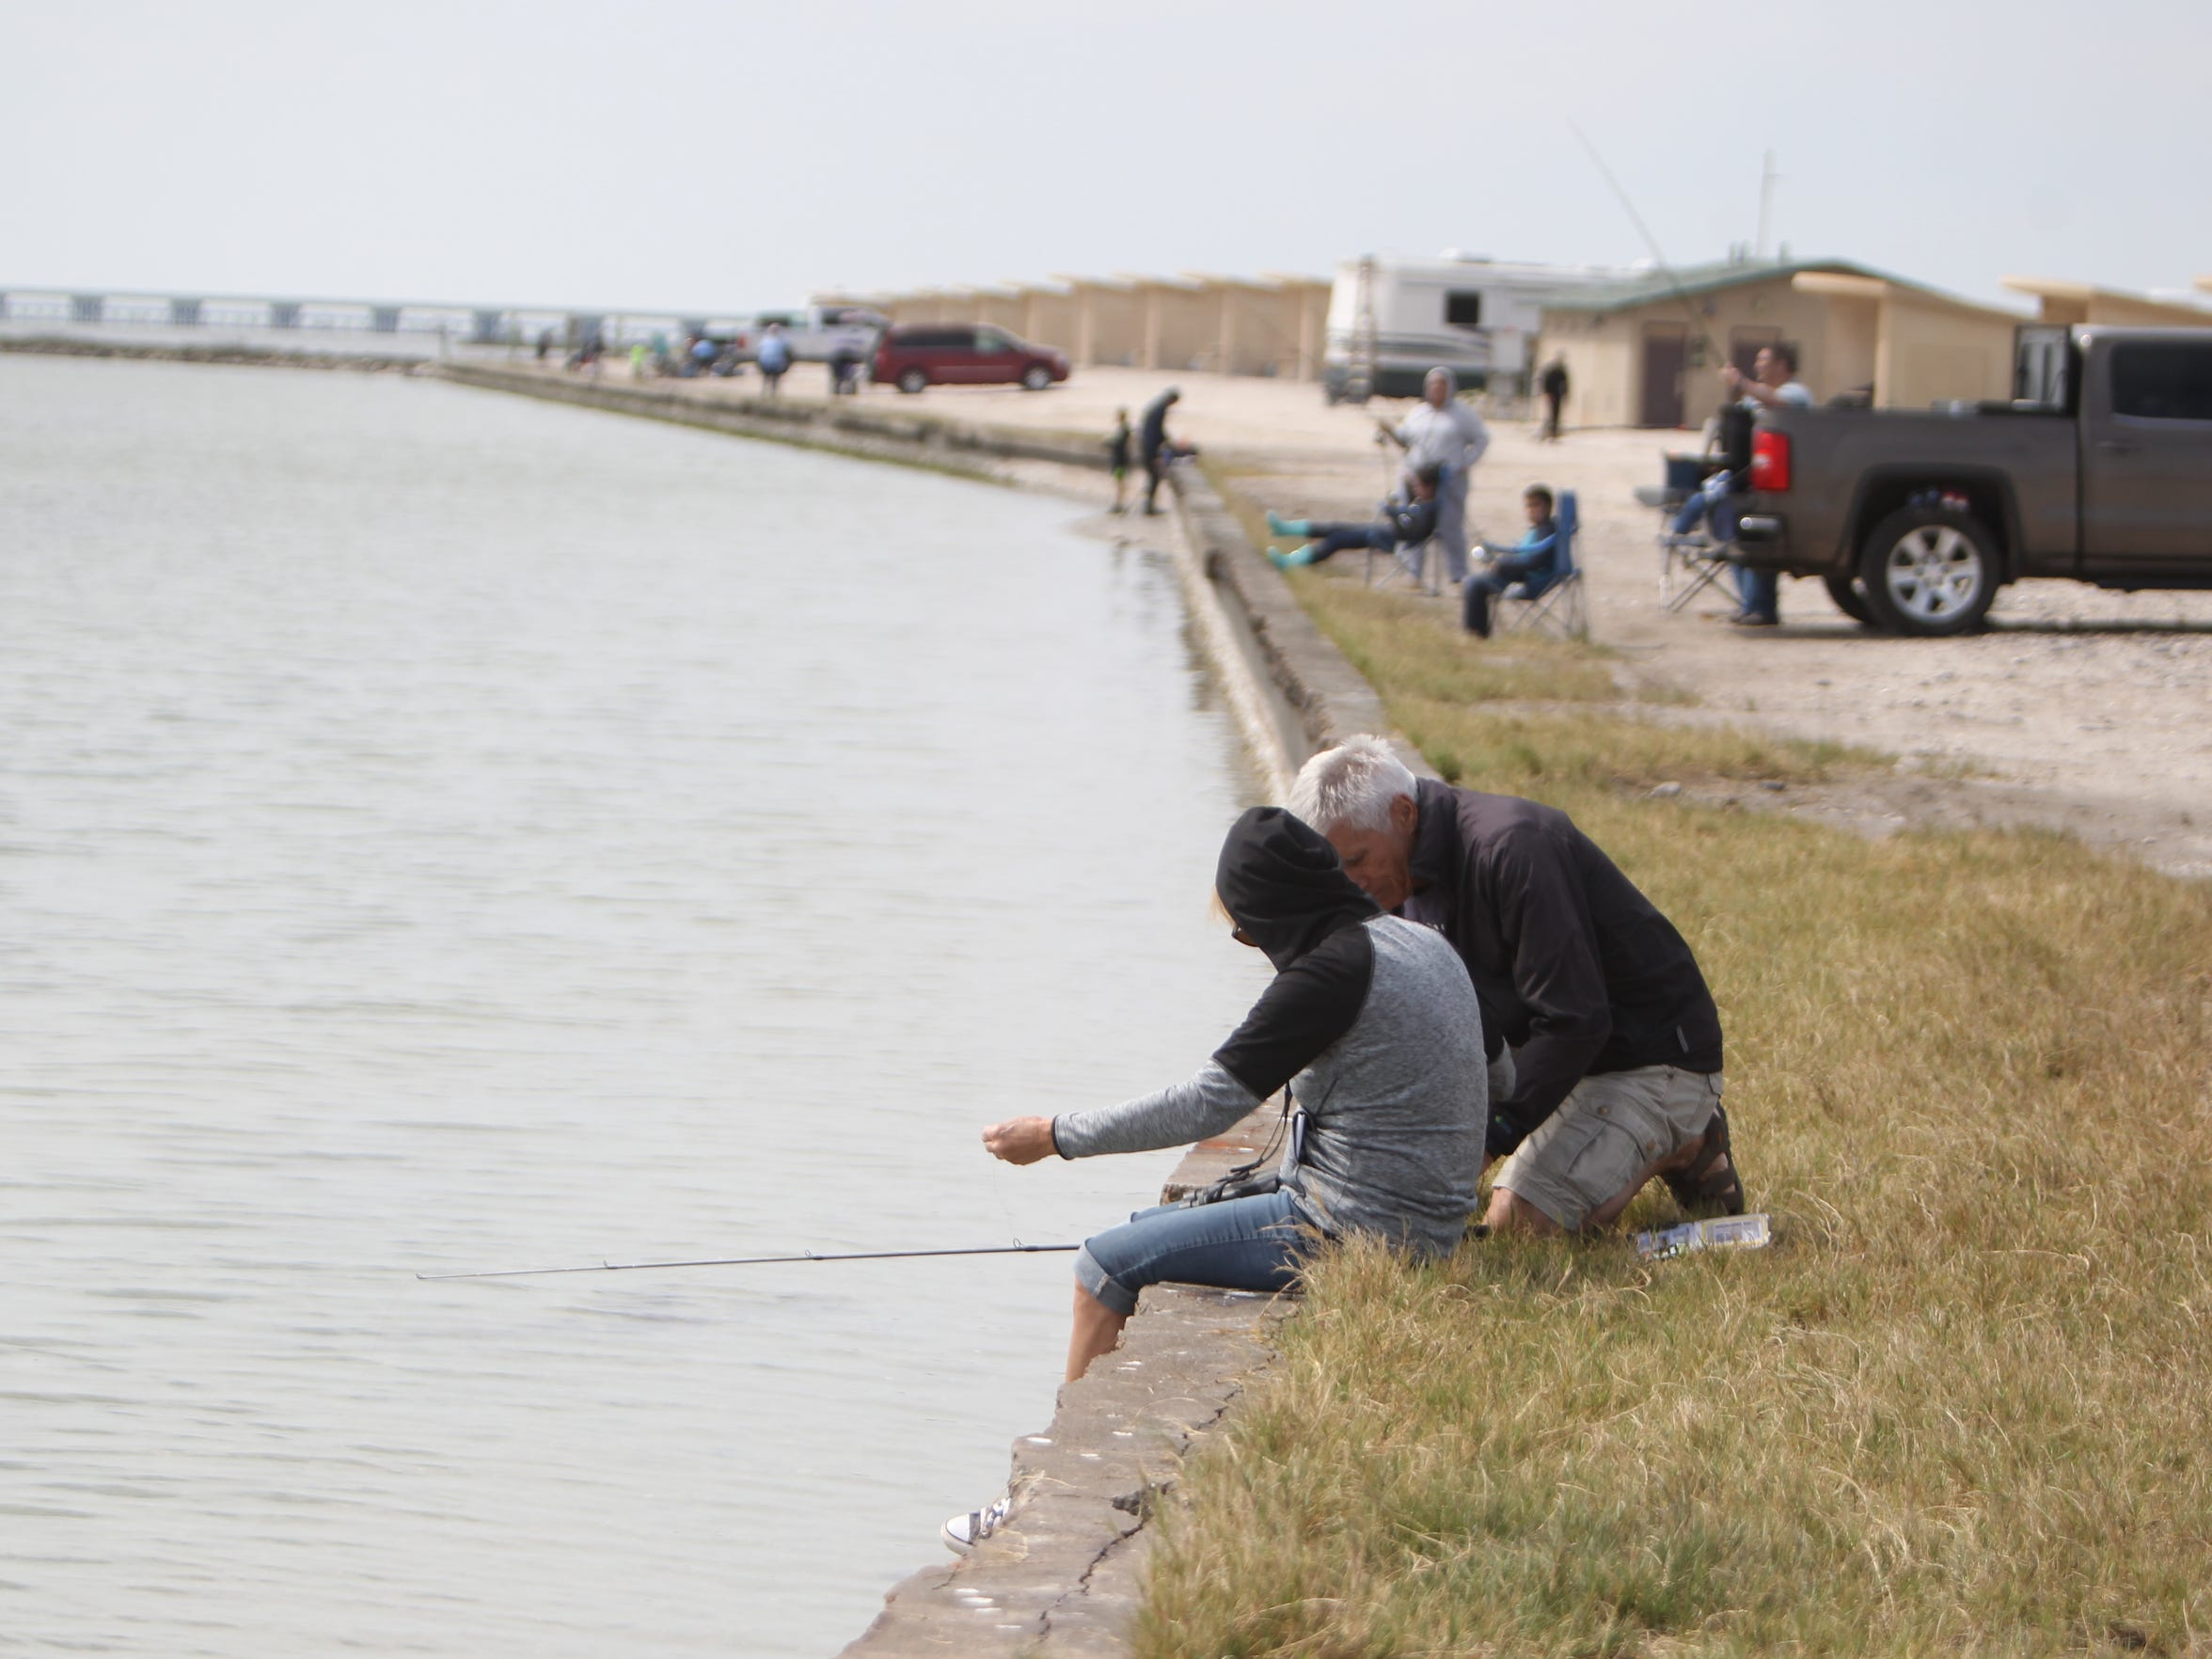 Goose Island State Park near Rockport has long stretches of shoreline for fishing.